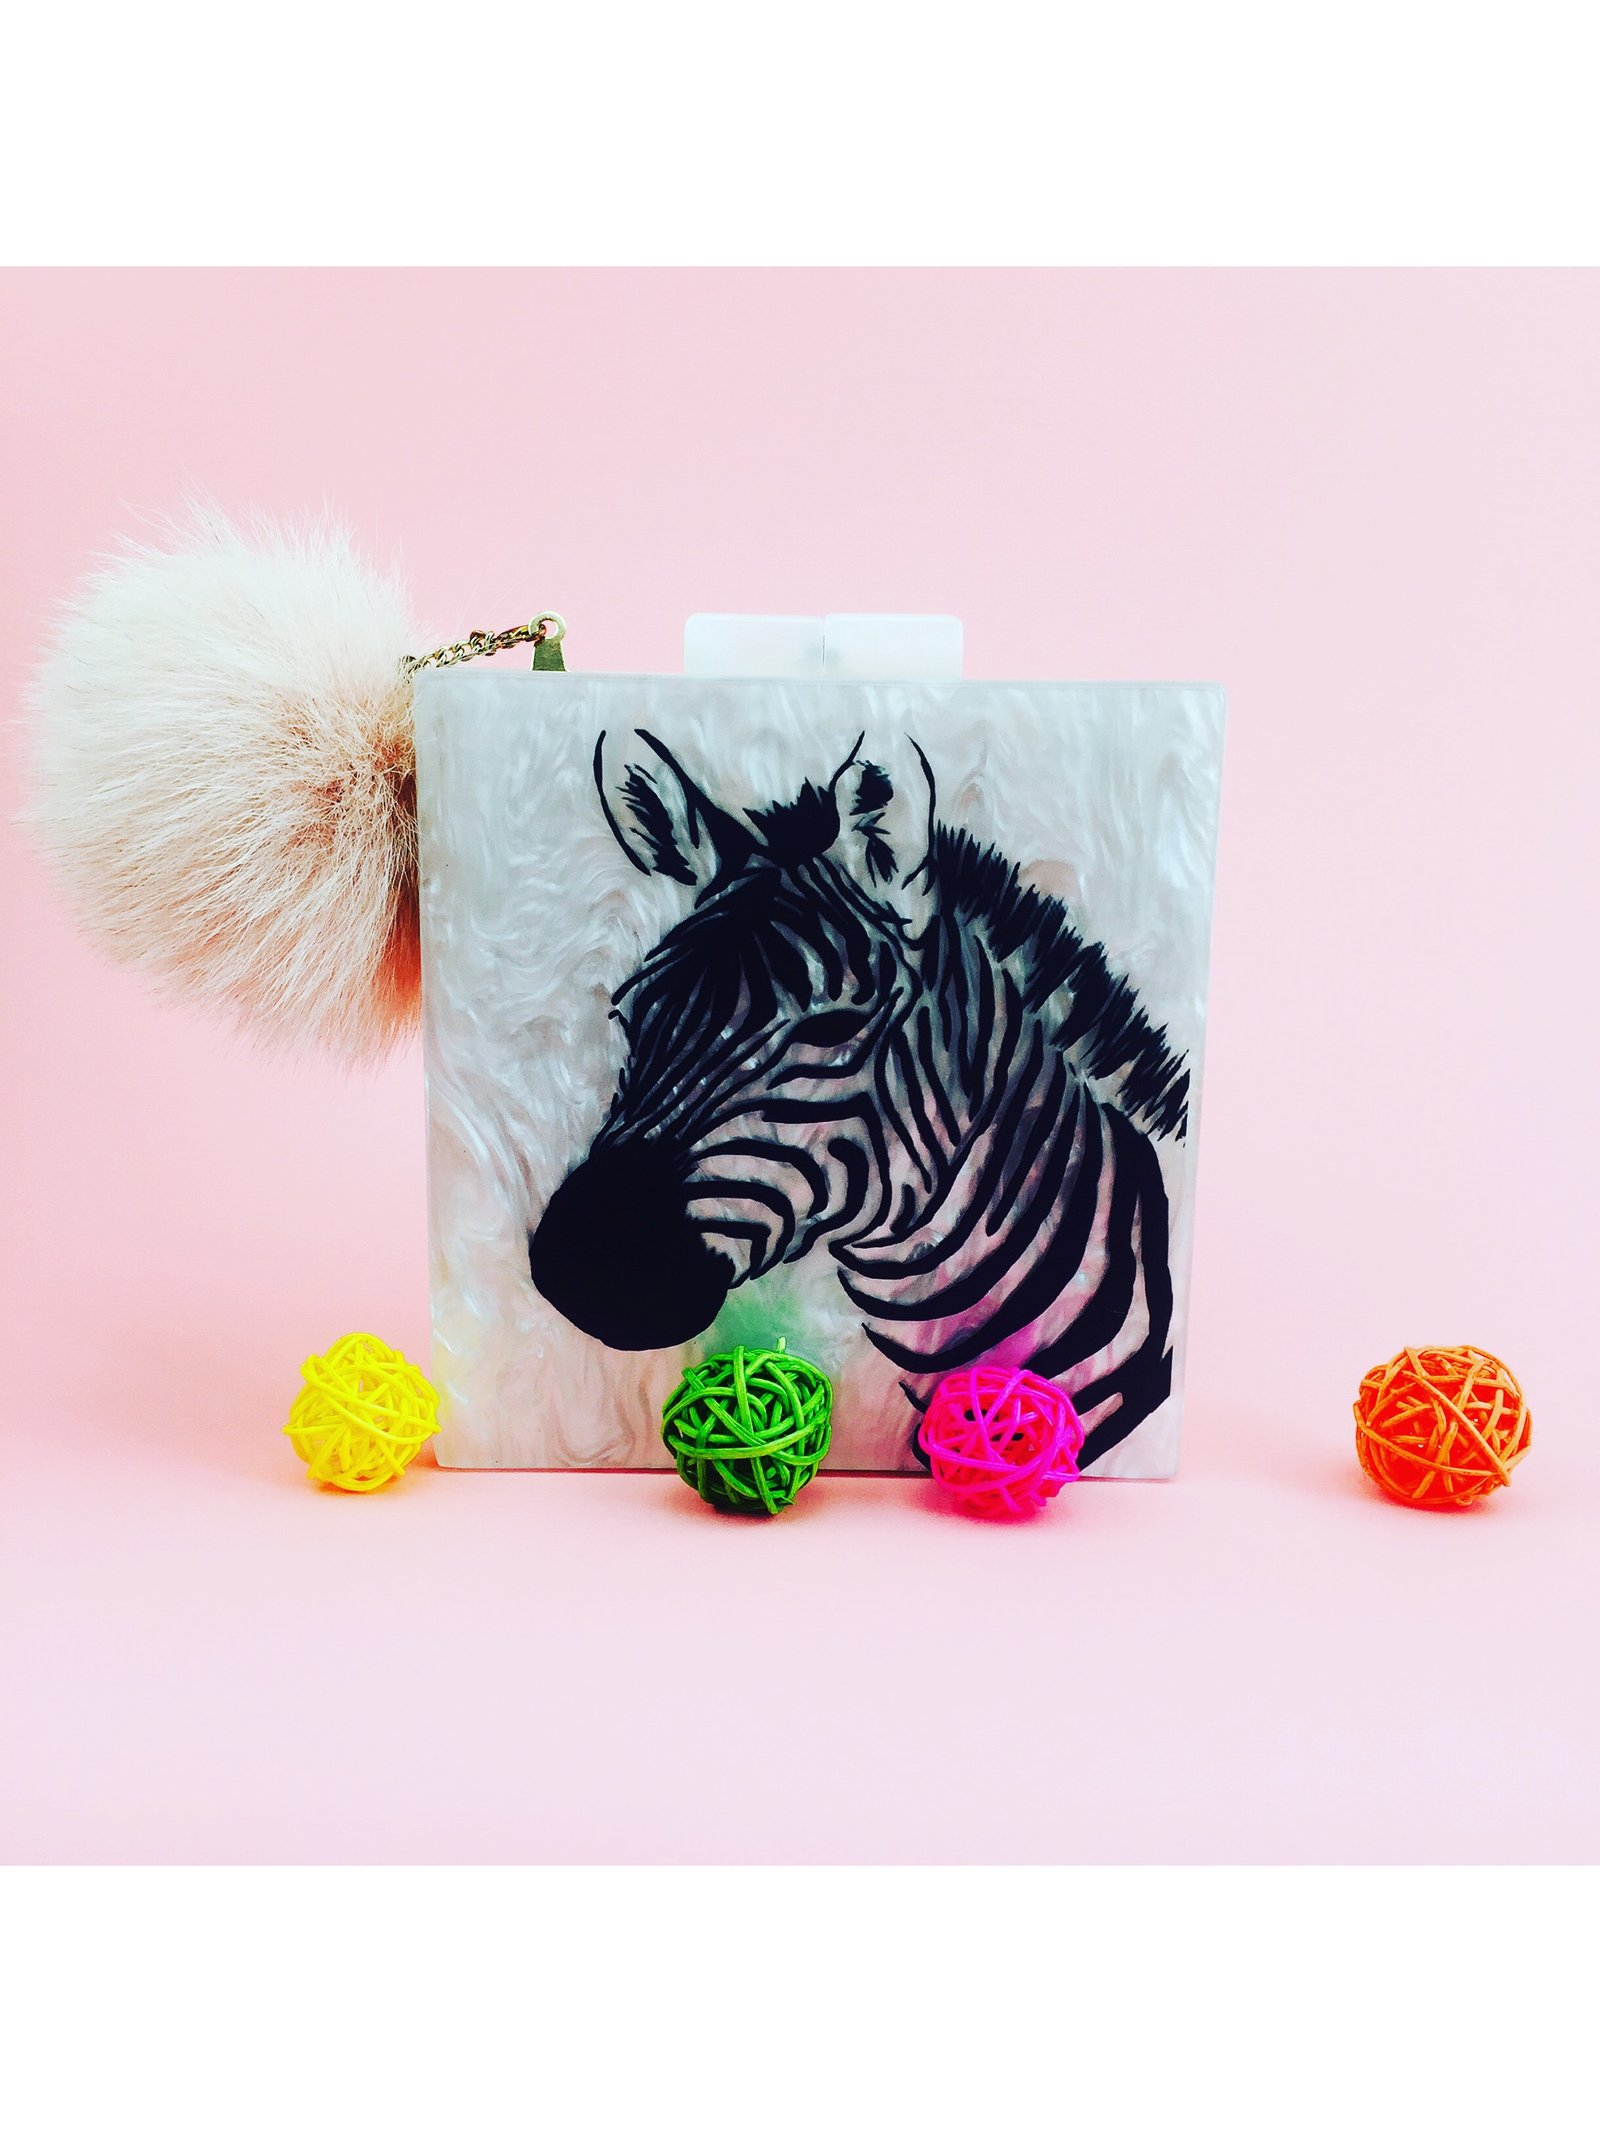 Milanblocks Mother of Pearl Zebra Acrylic Box Clutch